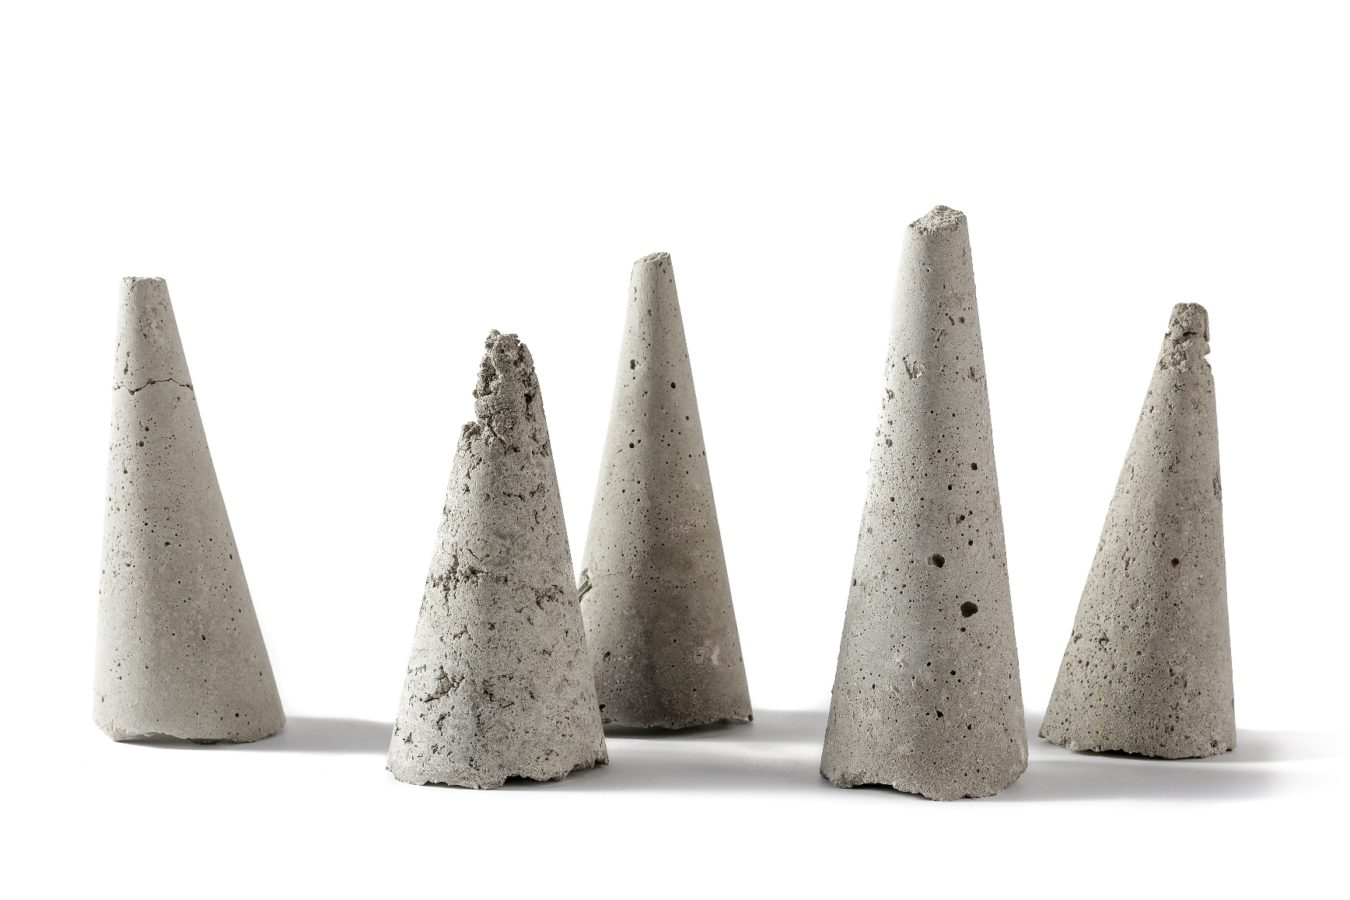 Untitled, ash cones, h 30 cm. 2008 - in progress (photo by Pier Luigi Dessì)